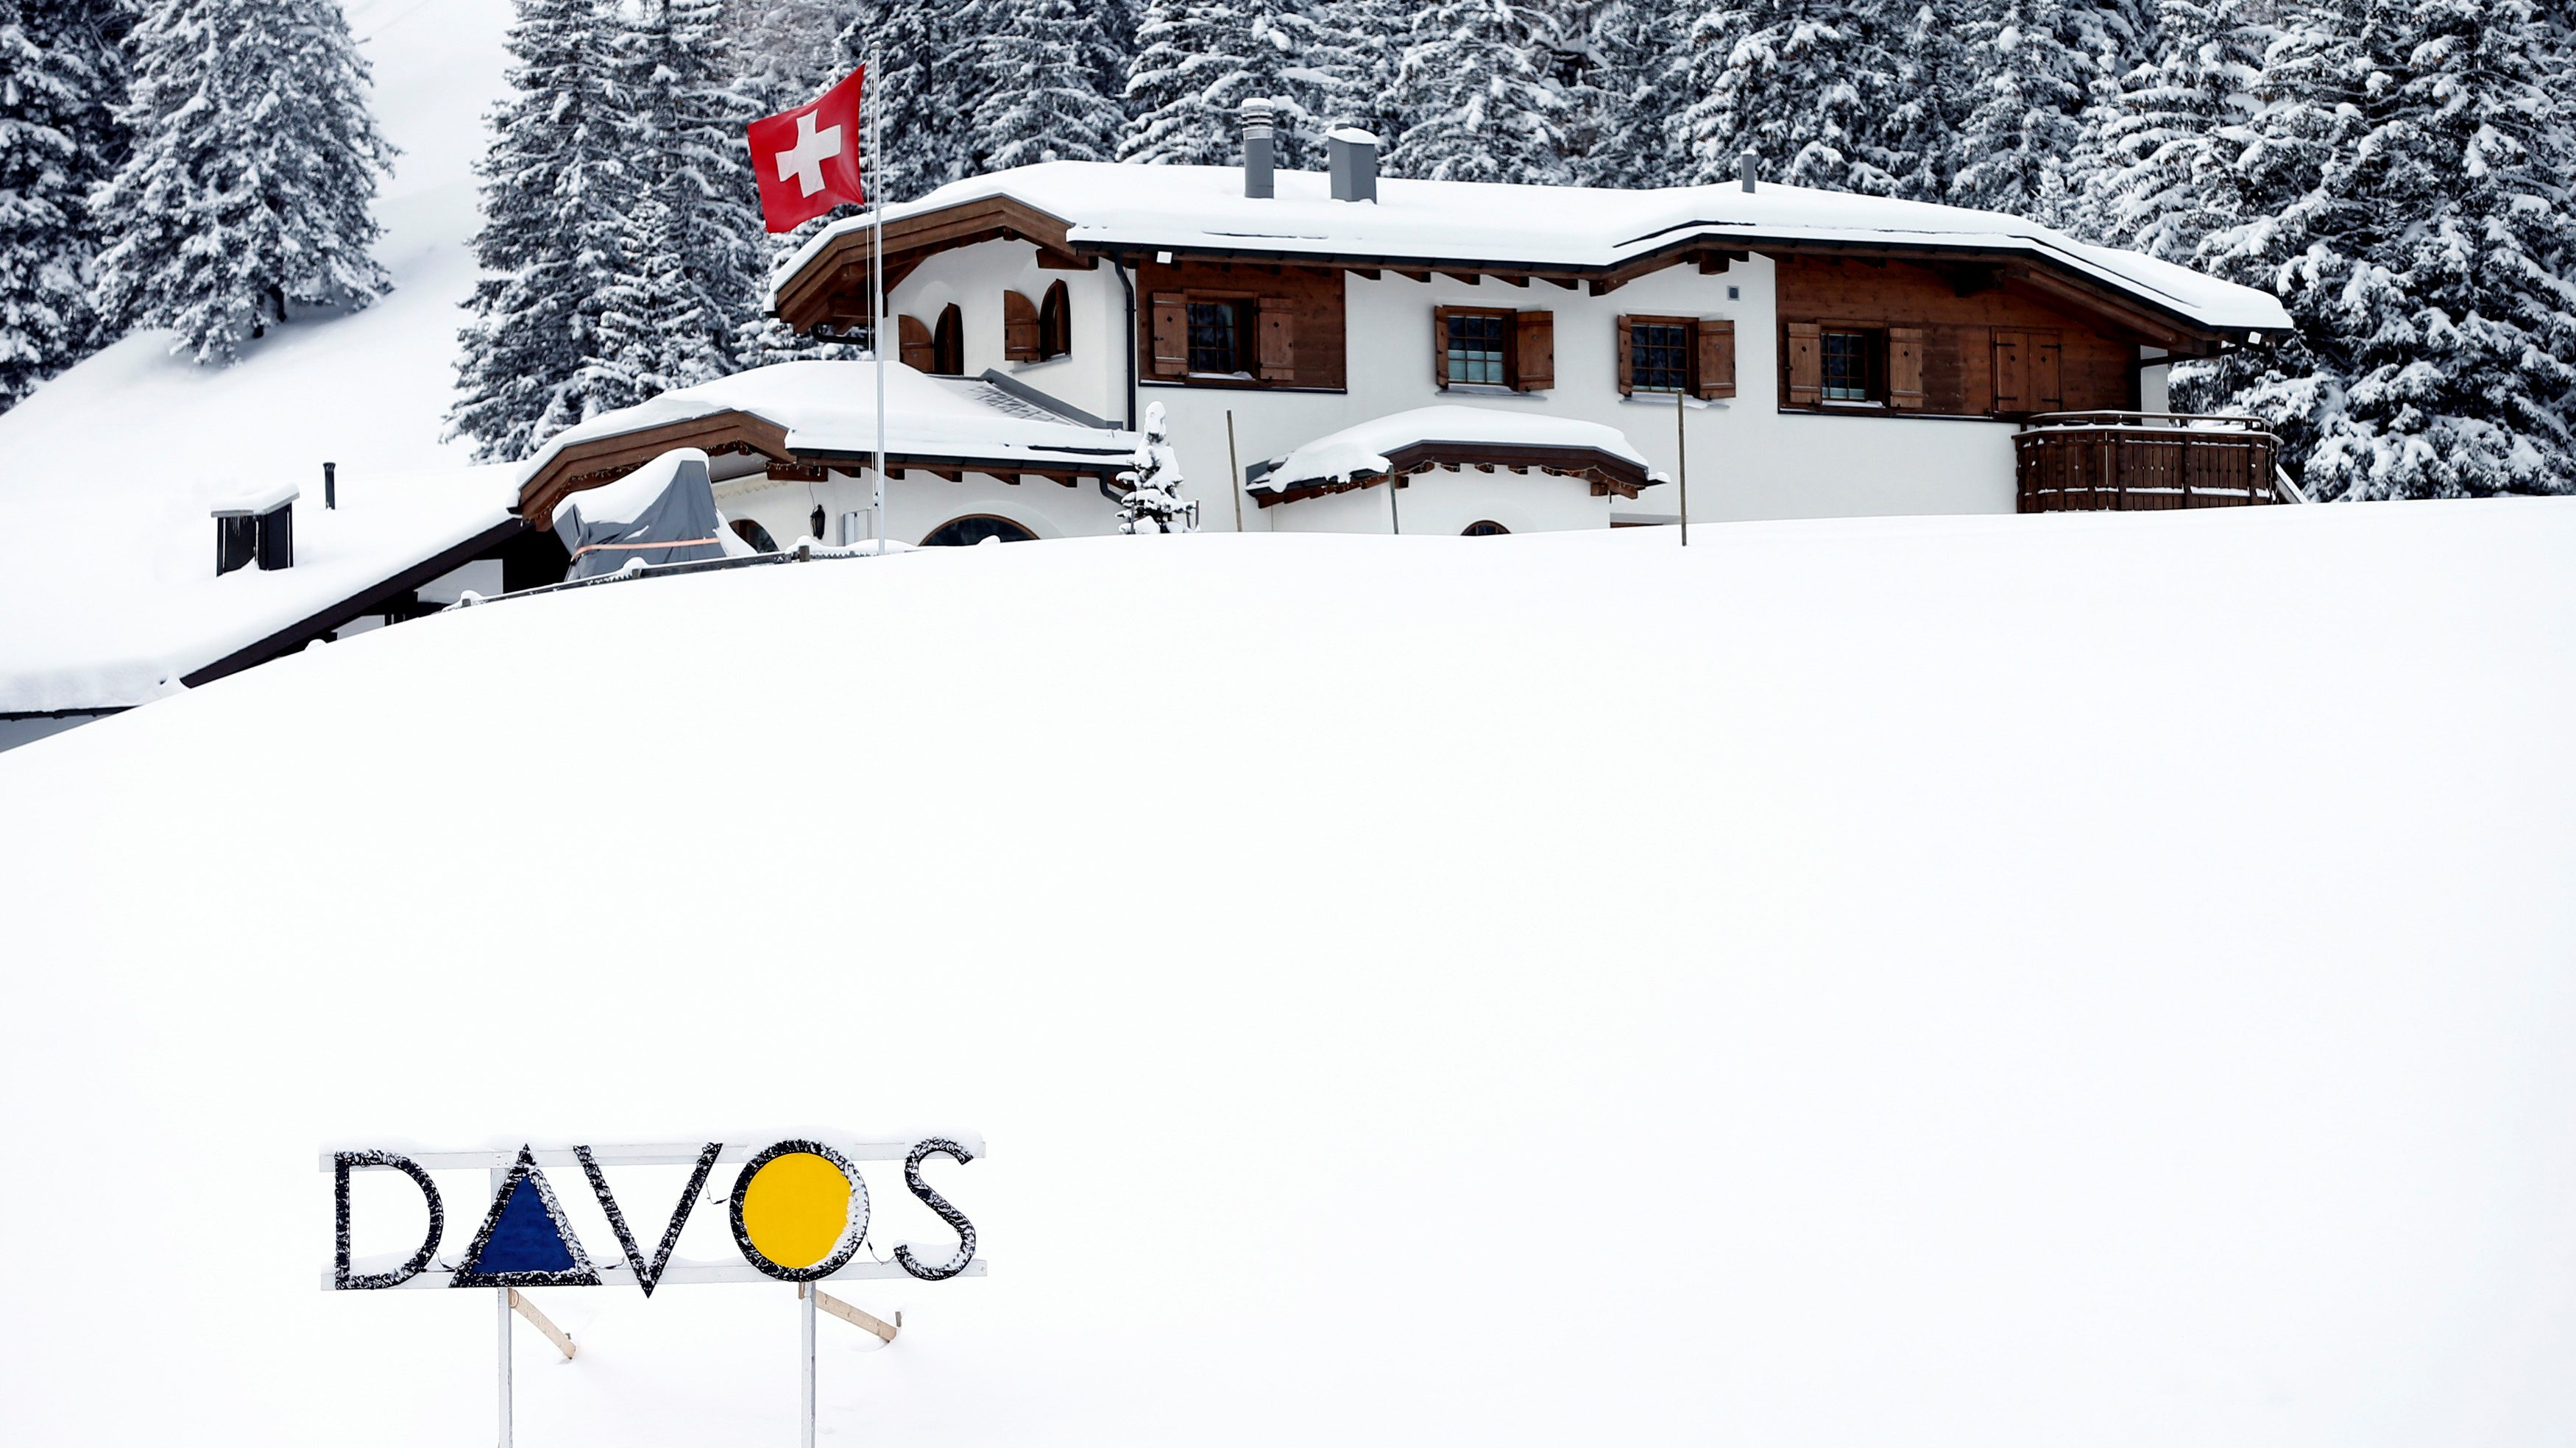 A Davos logo is seen before the annual meeting of the World Economic Forum (WEF) in Davos, Switzerland January 15, 2017. REUTERS/Ruben Sprich - RTSVLHS